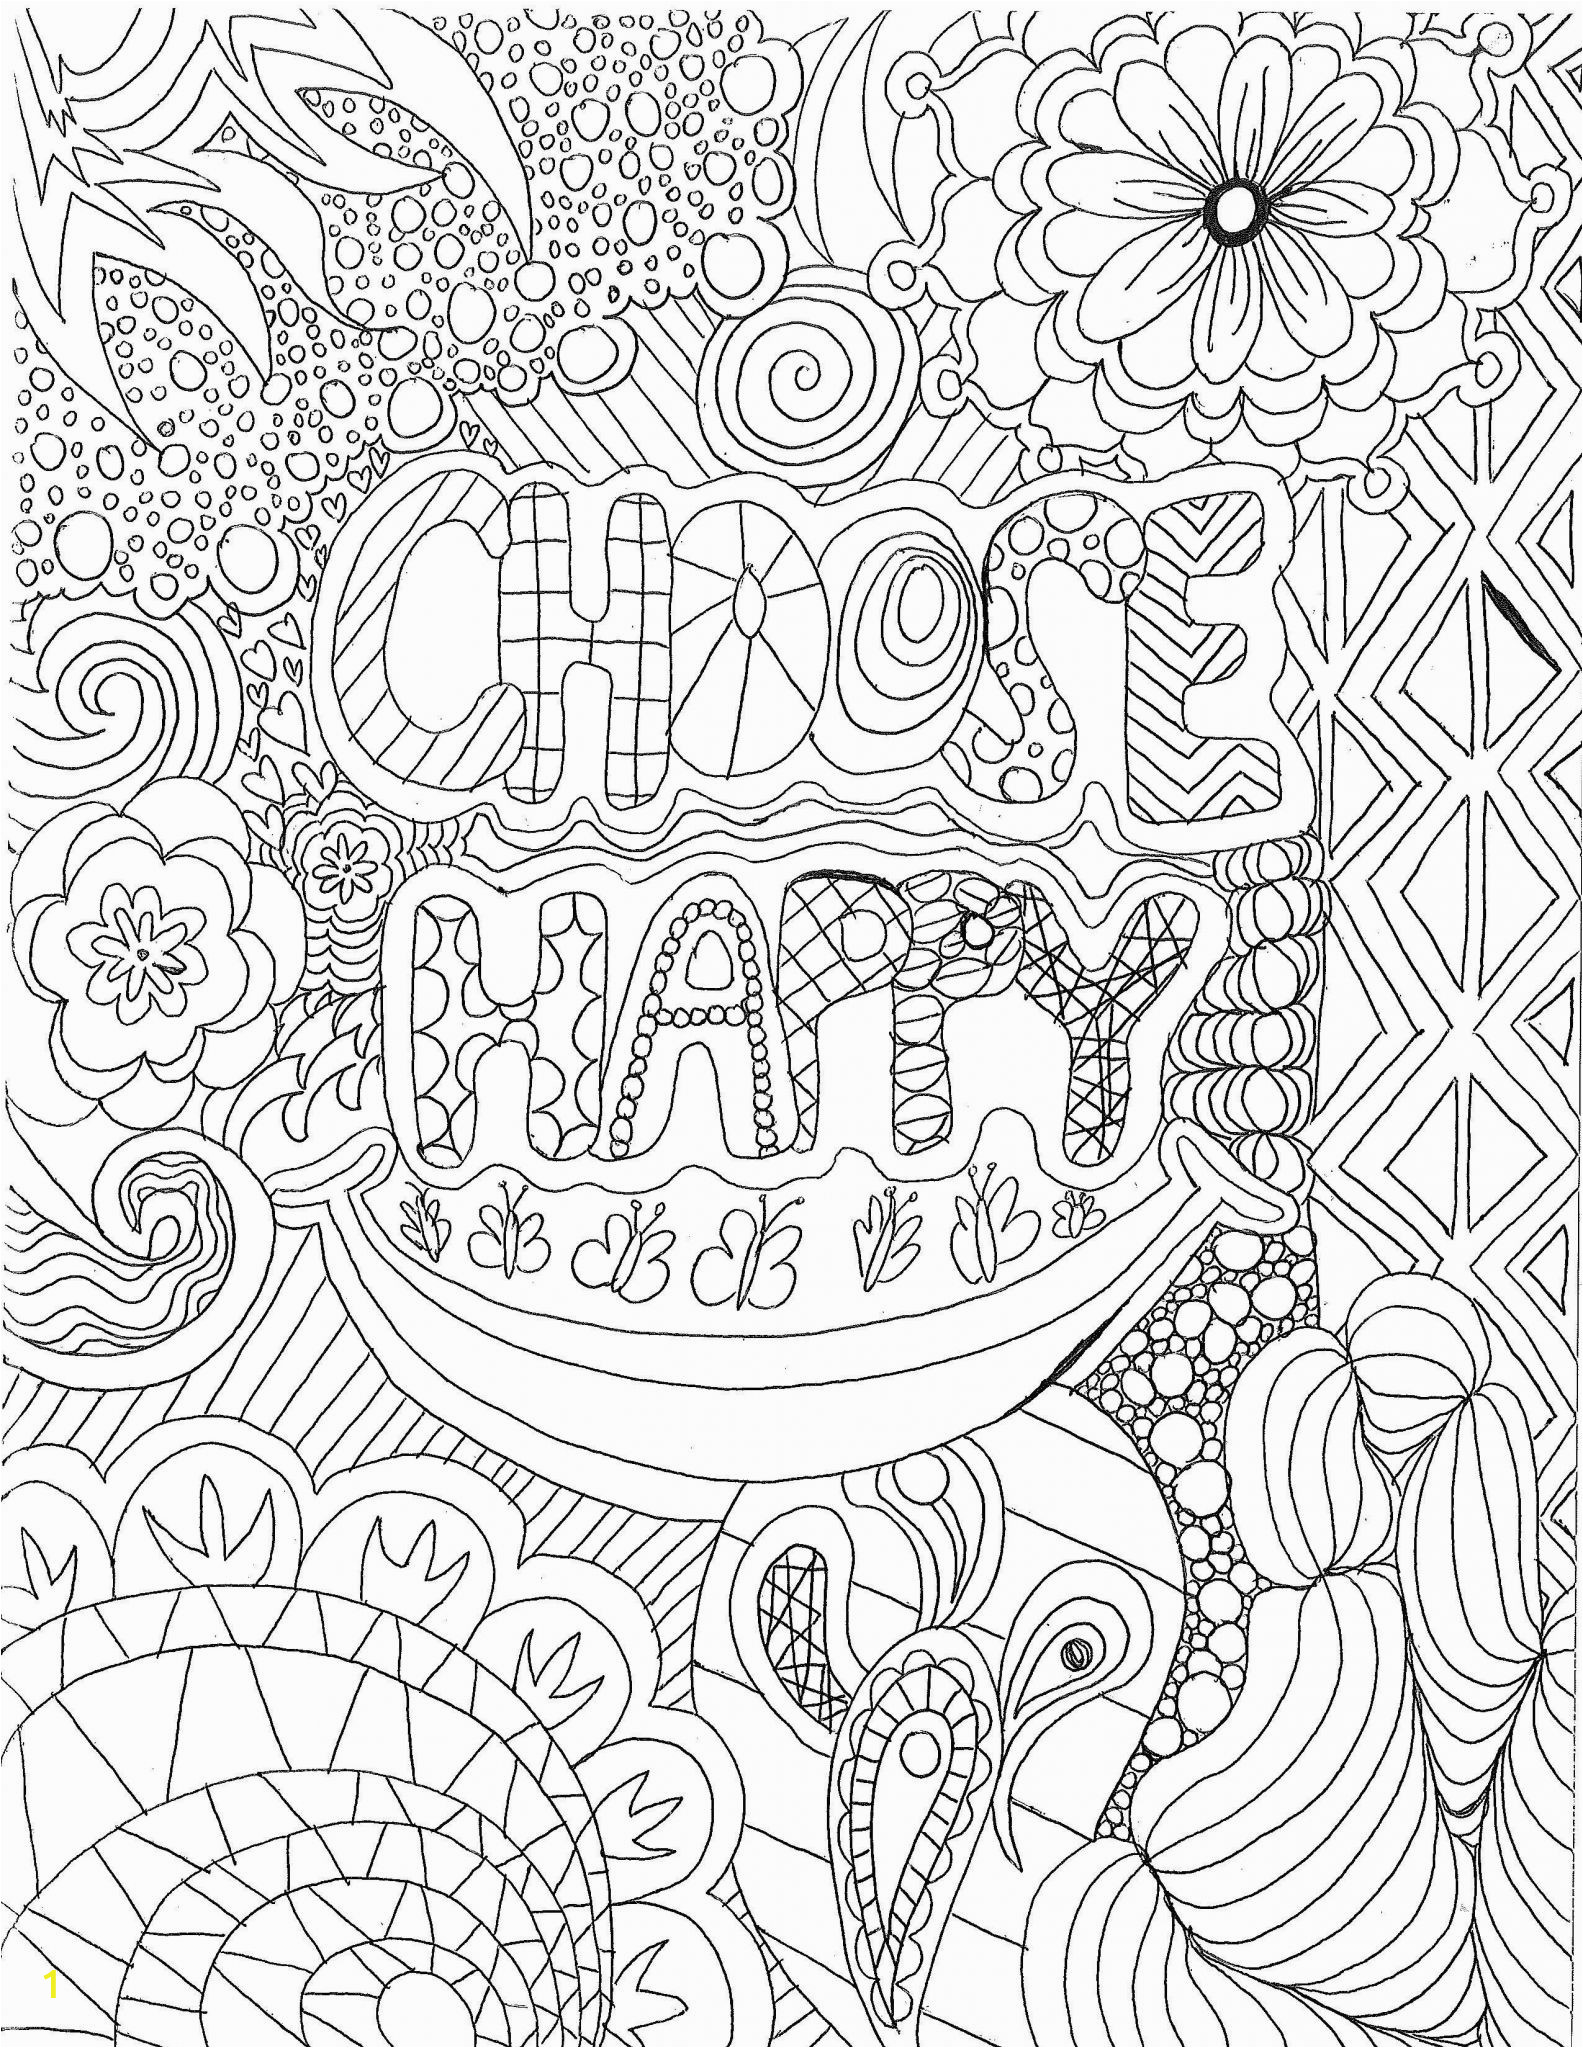 Coping Skills Coloring Pages